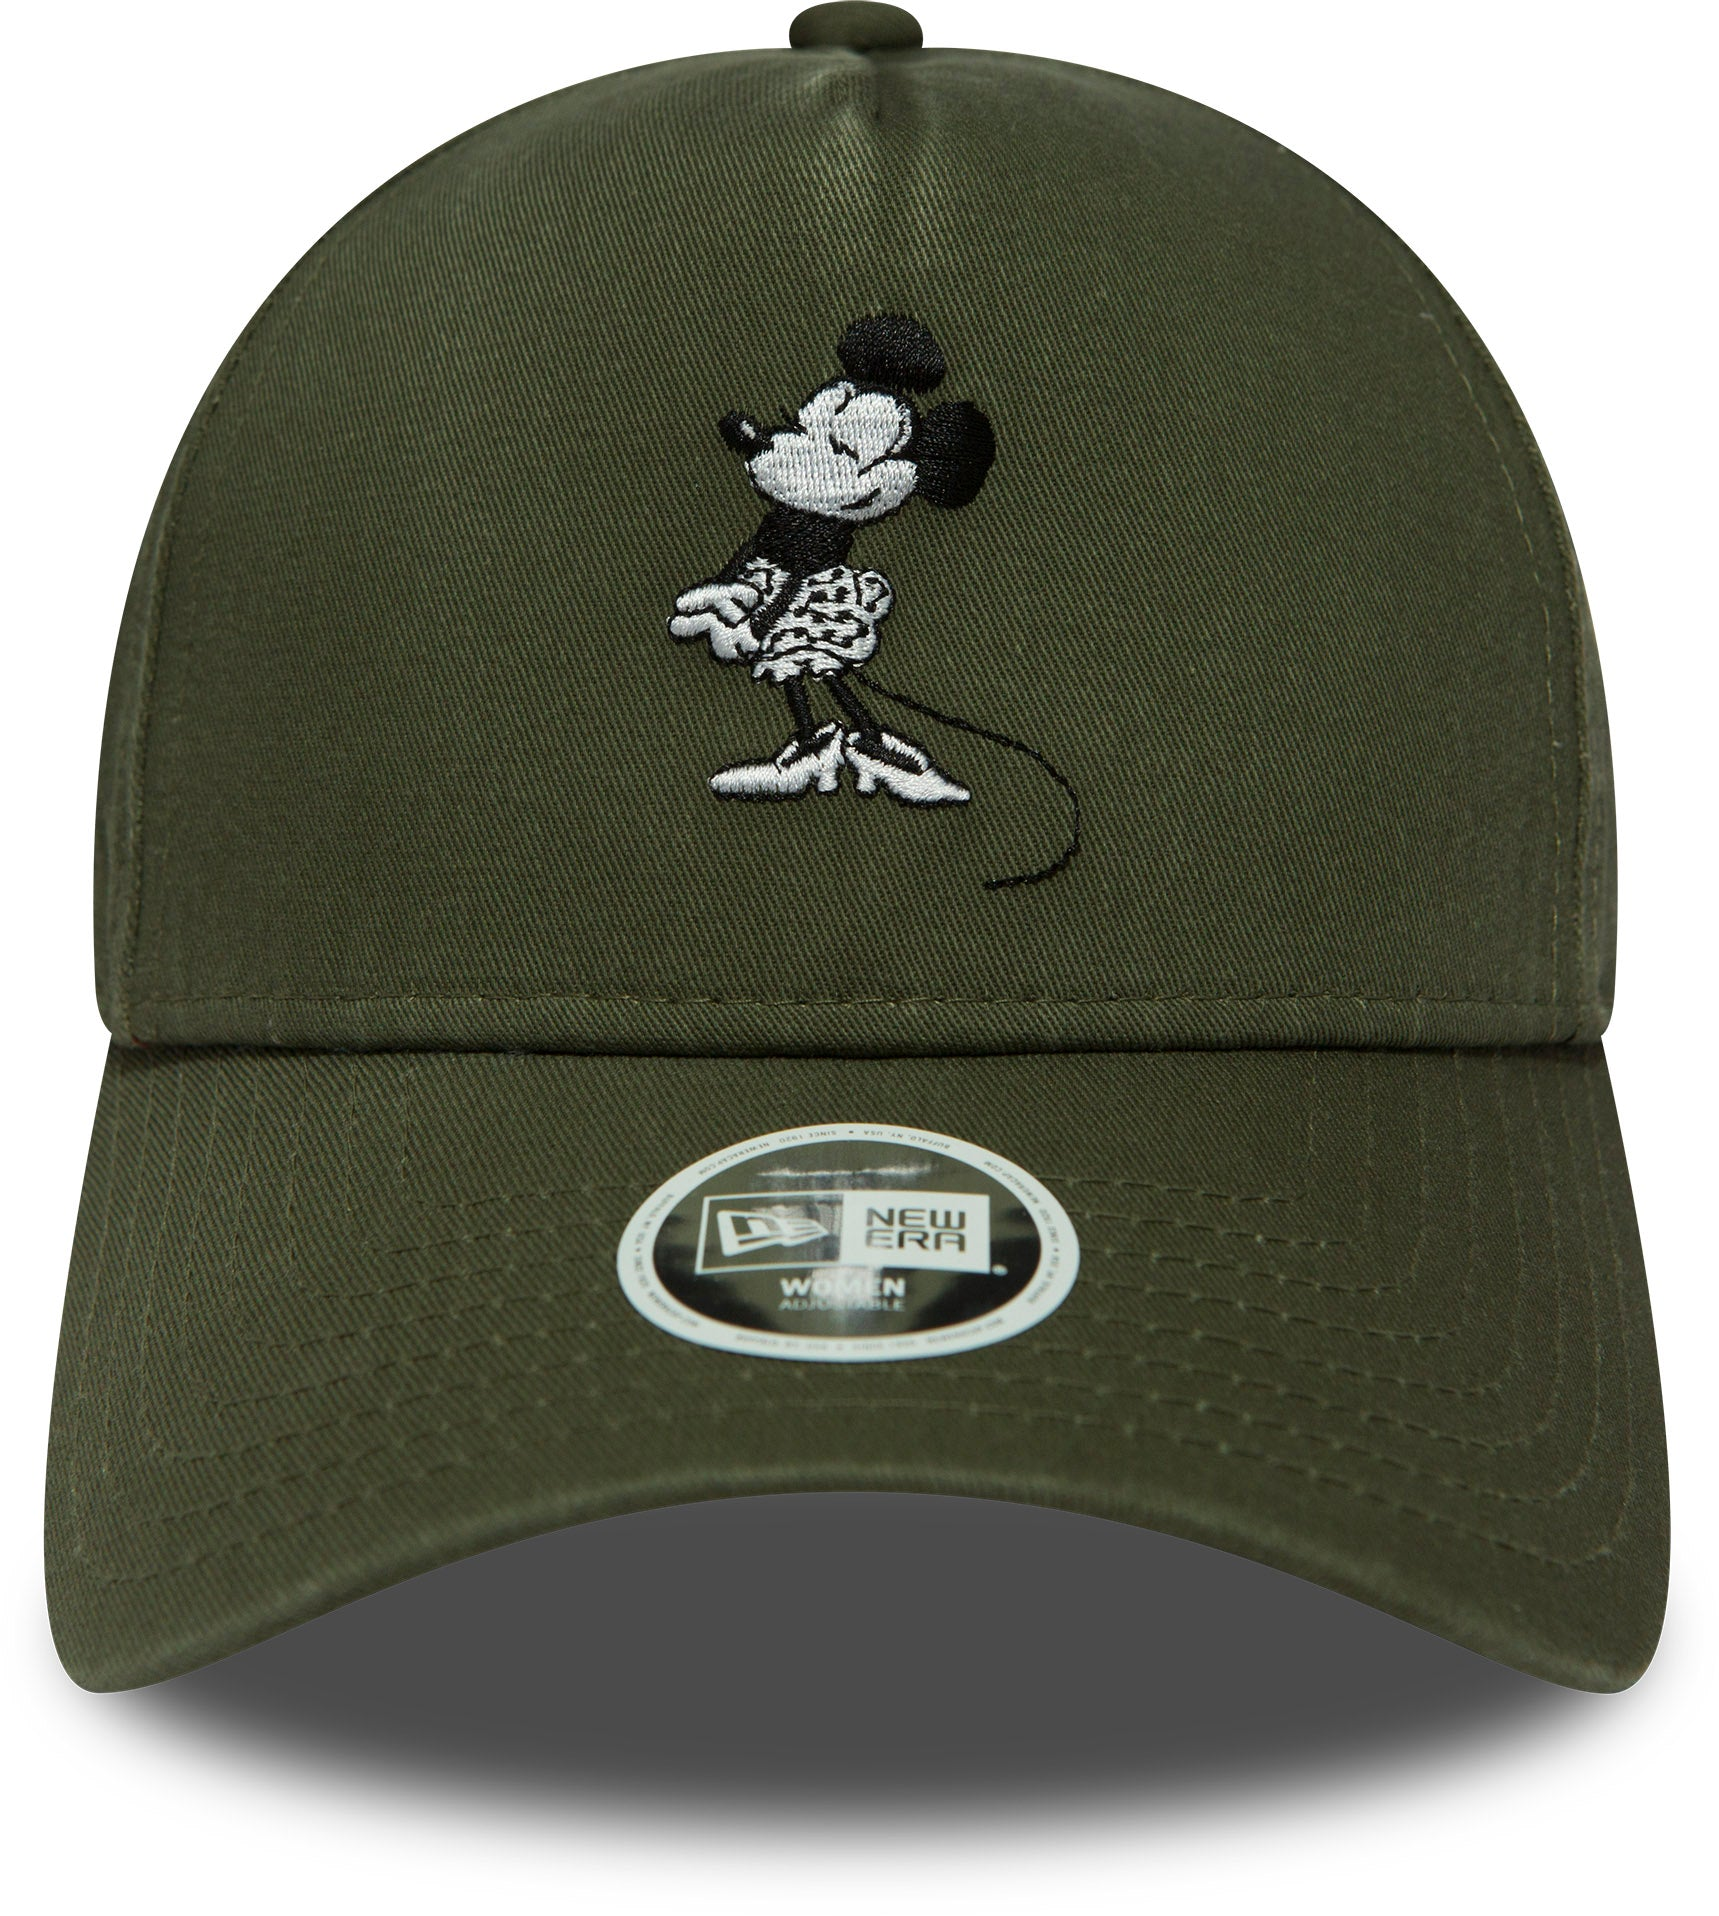 Minnie Mouse Womens New Era Disney Trucker Cap - Olive – lovemycap 75663a223de